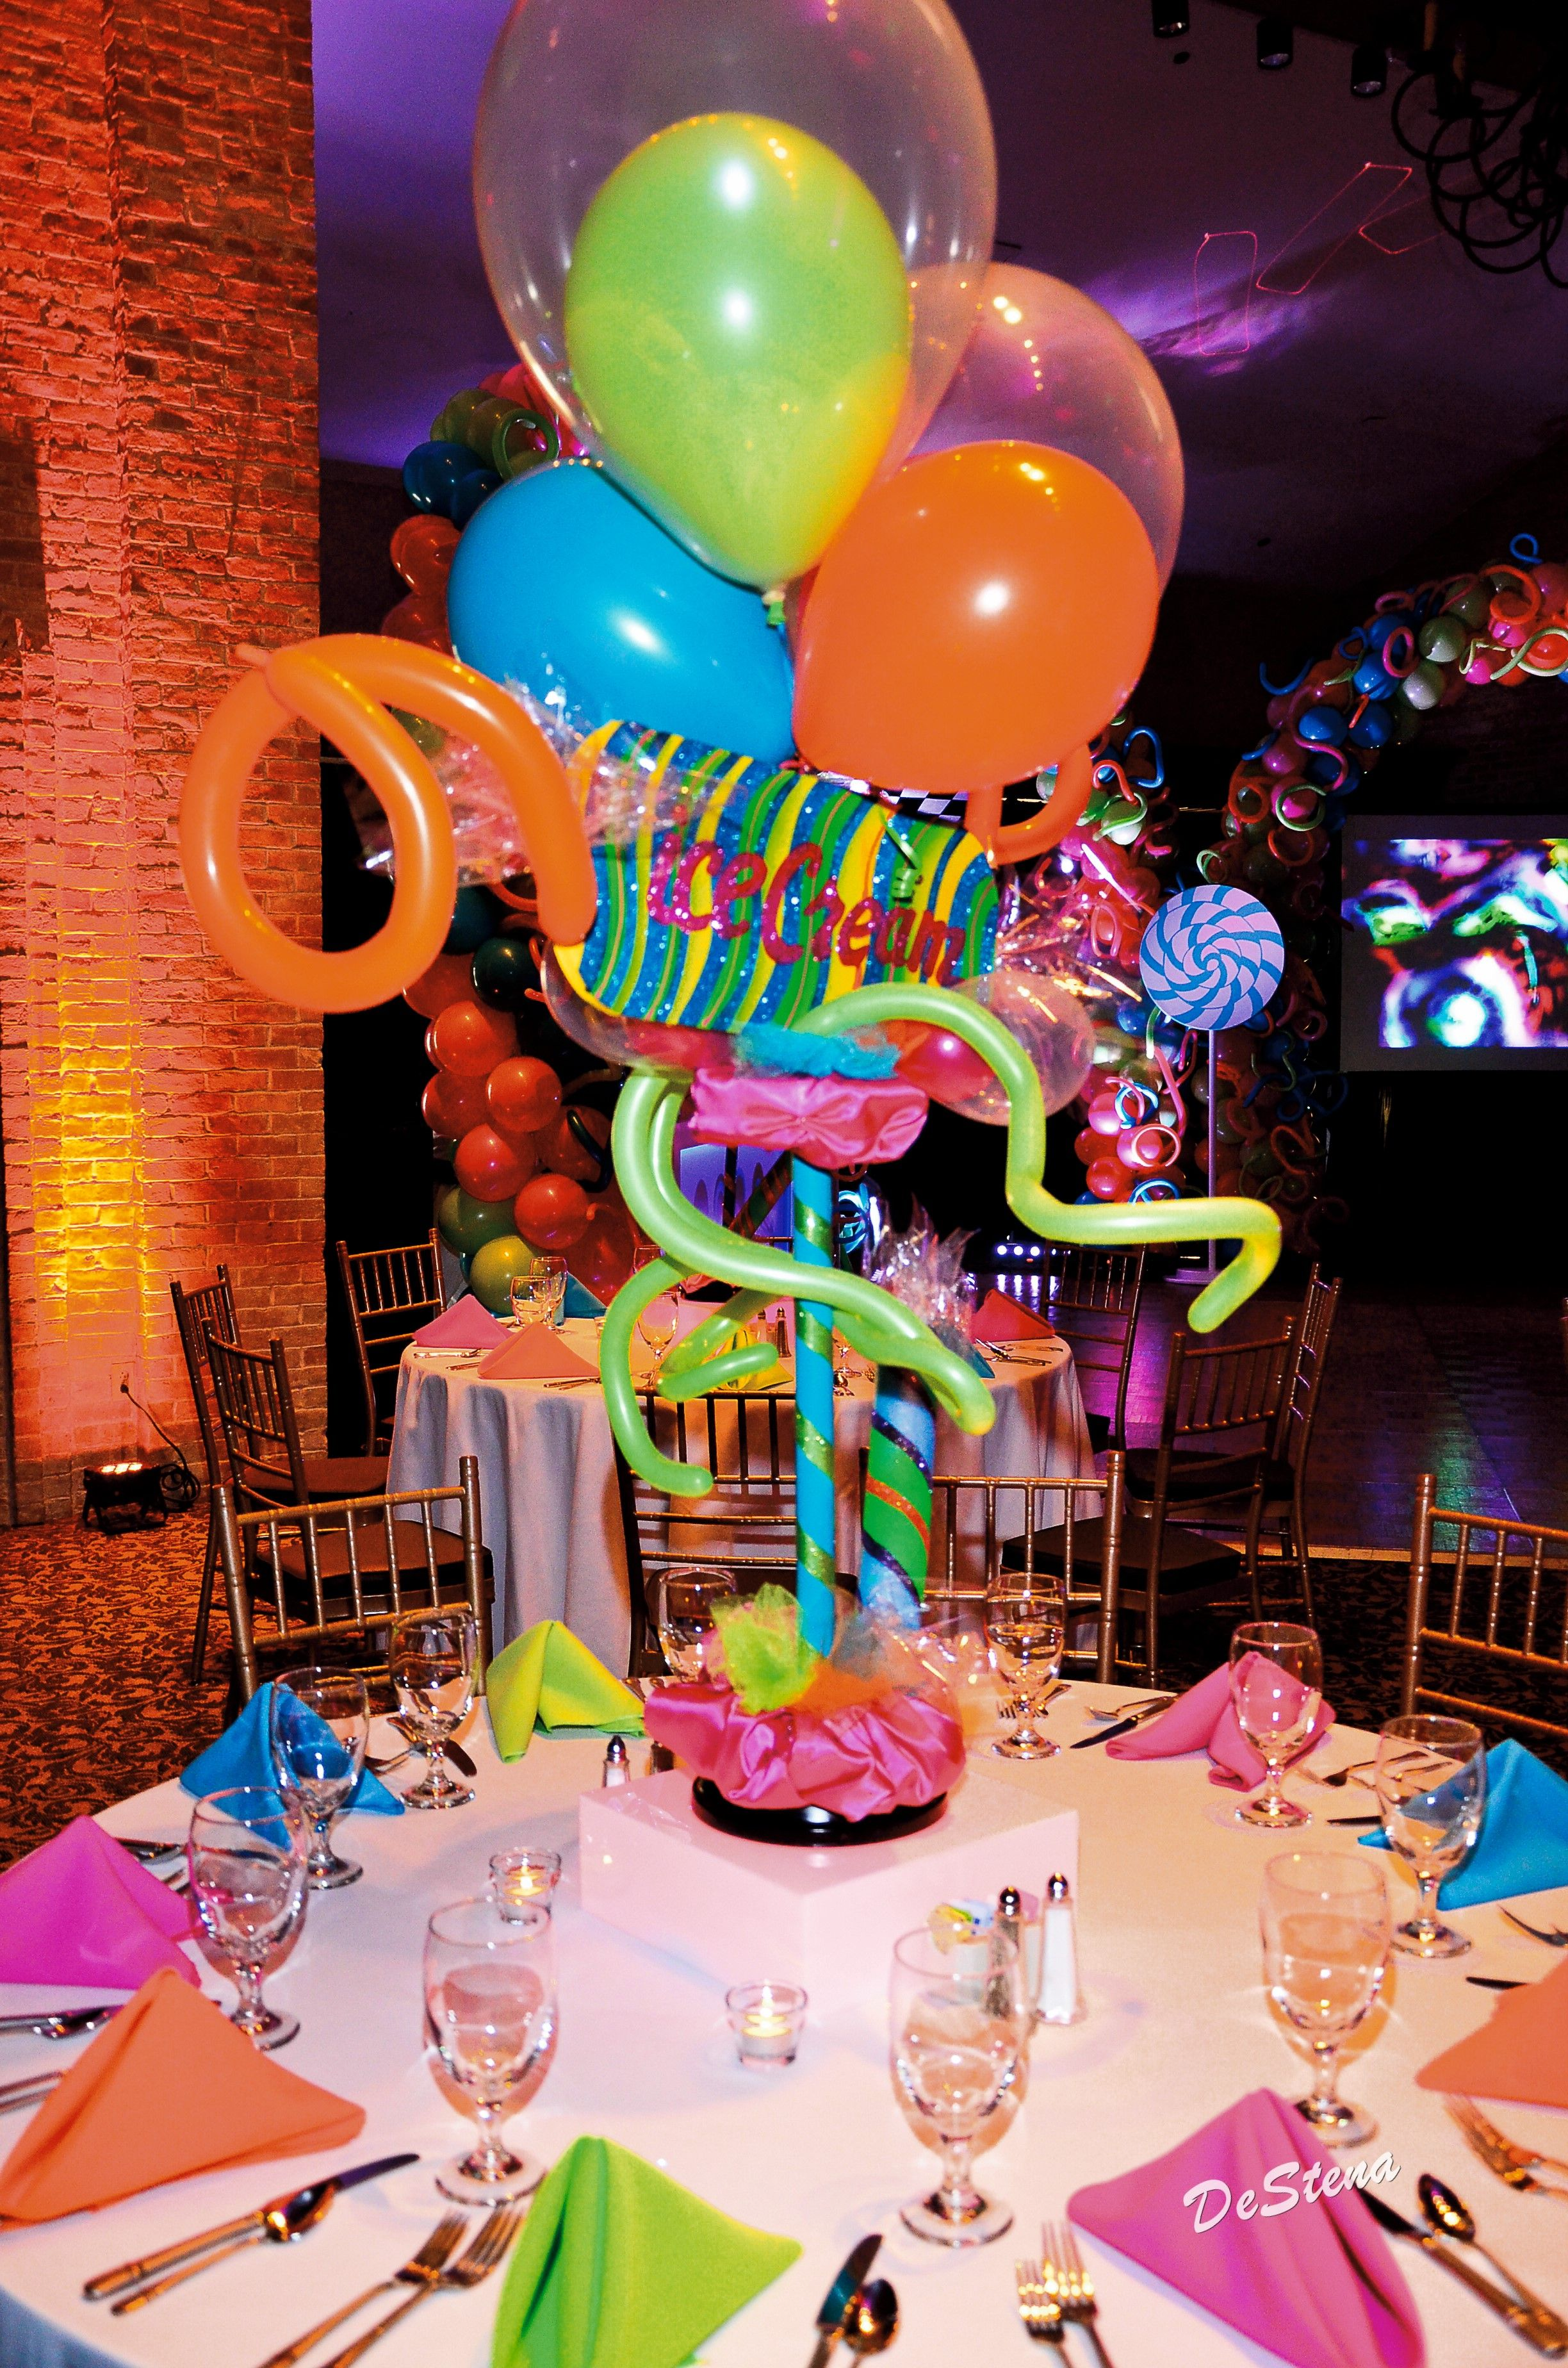 Candy Theme Bar Mitzvah Tie A Bow Event Planning Dallas Texas